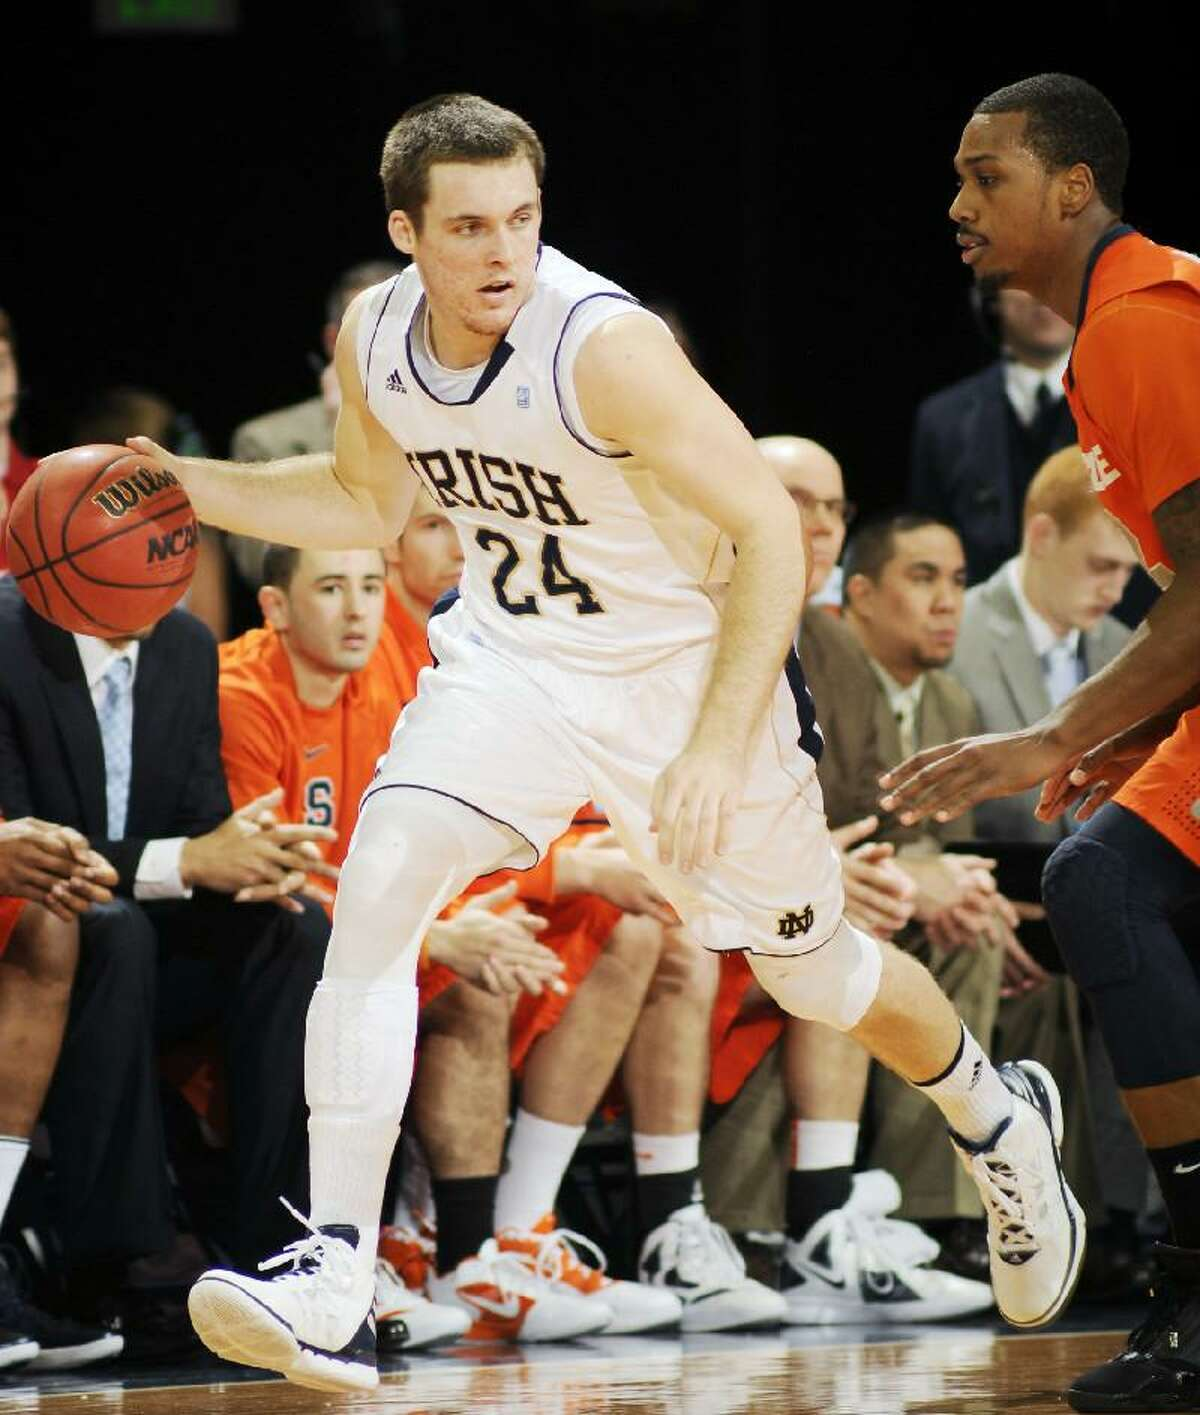 ASSOCIATED PRESS Notre Dame guard Pat Connaughton (24) drives the lane as Syracuse forward Kris Joseph pursues during the first half of Saturday's game in South Bend, Ind.